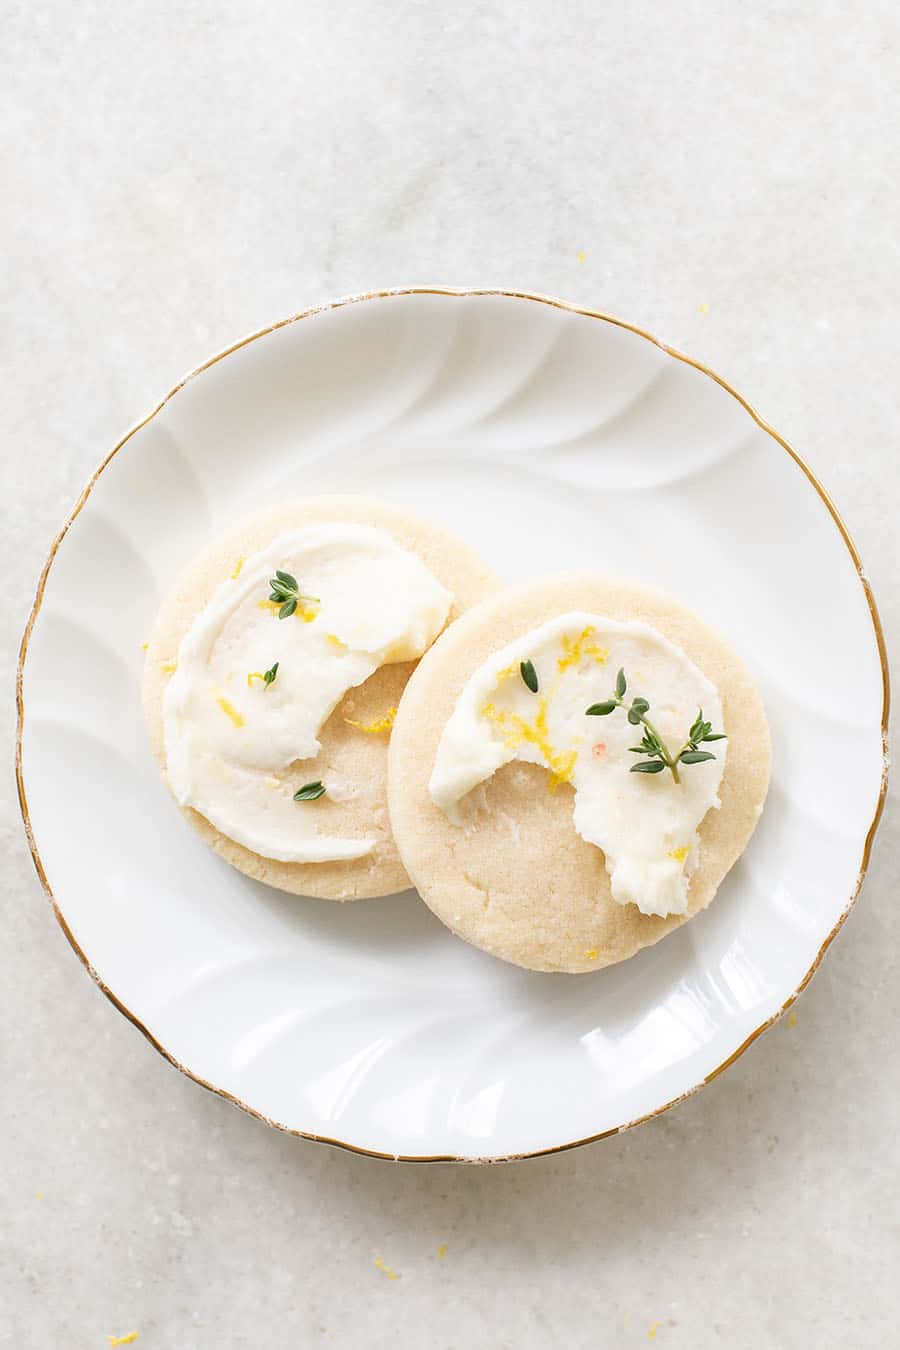 two Lemon & Thyme Shortbread Cookies on a white plate.